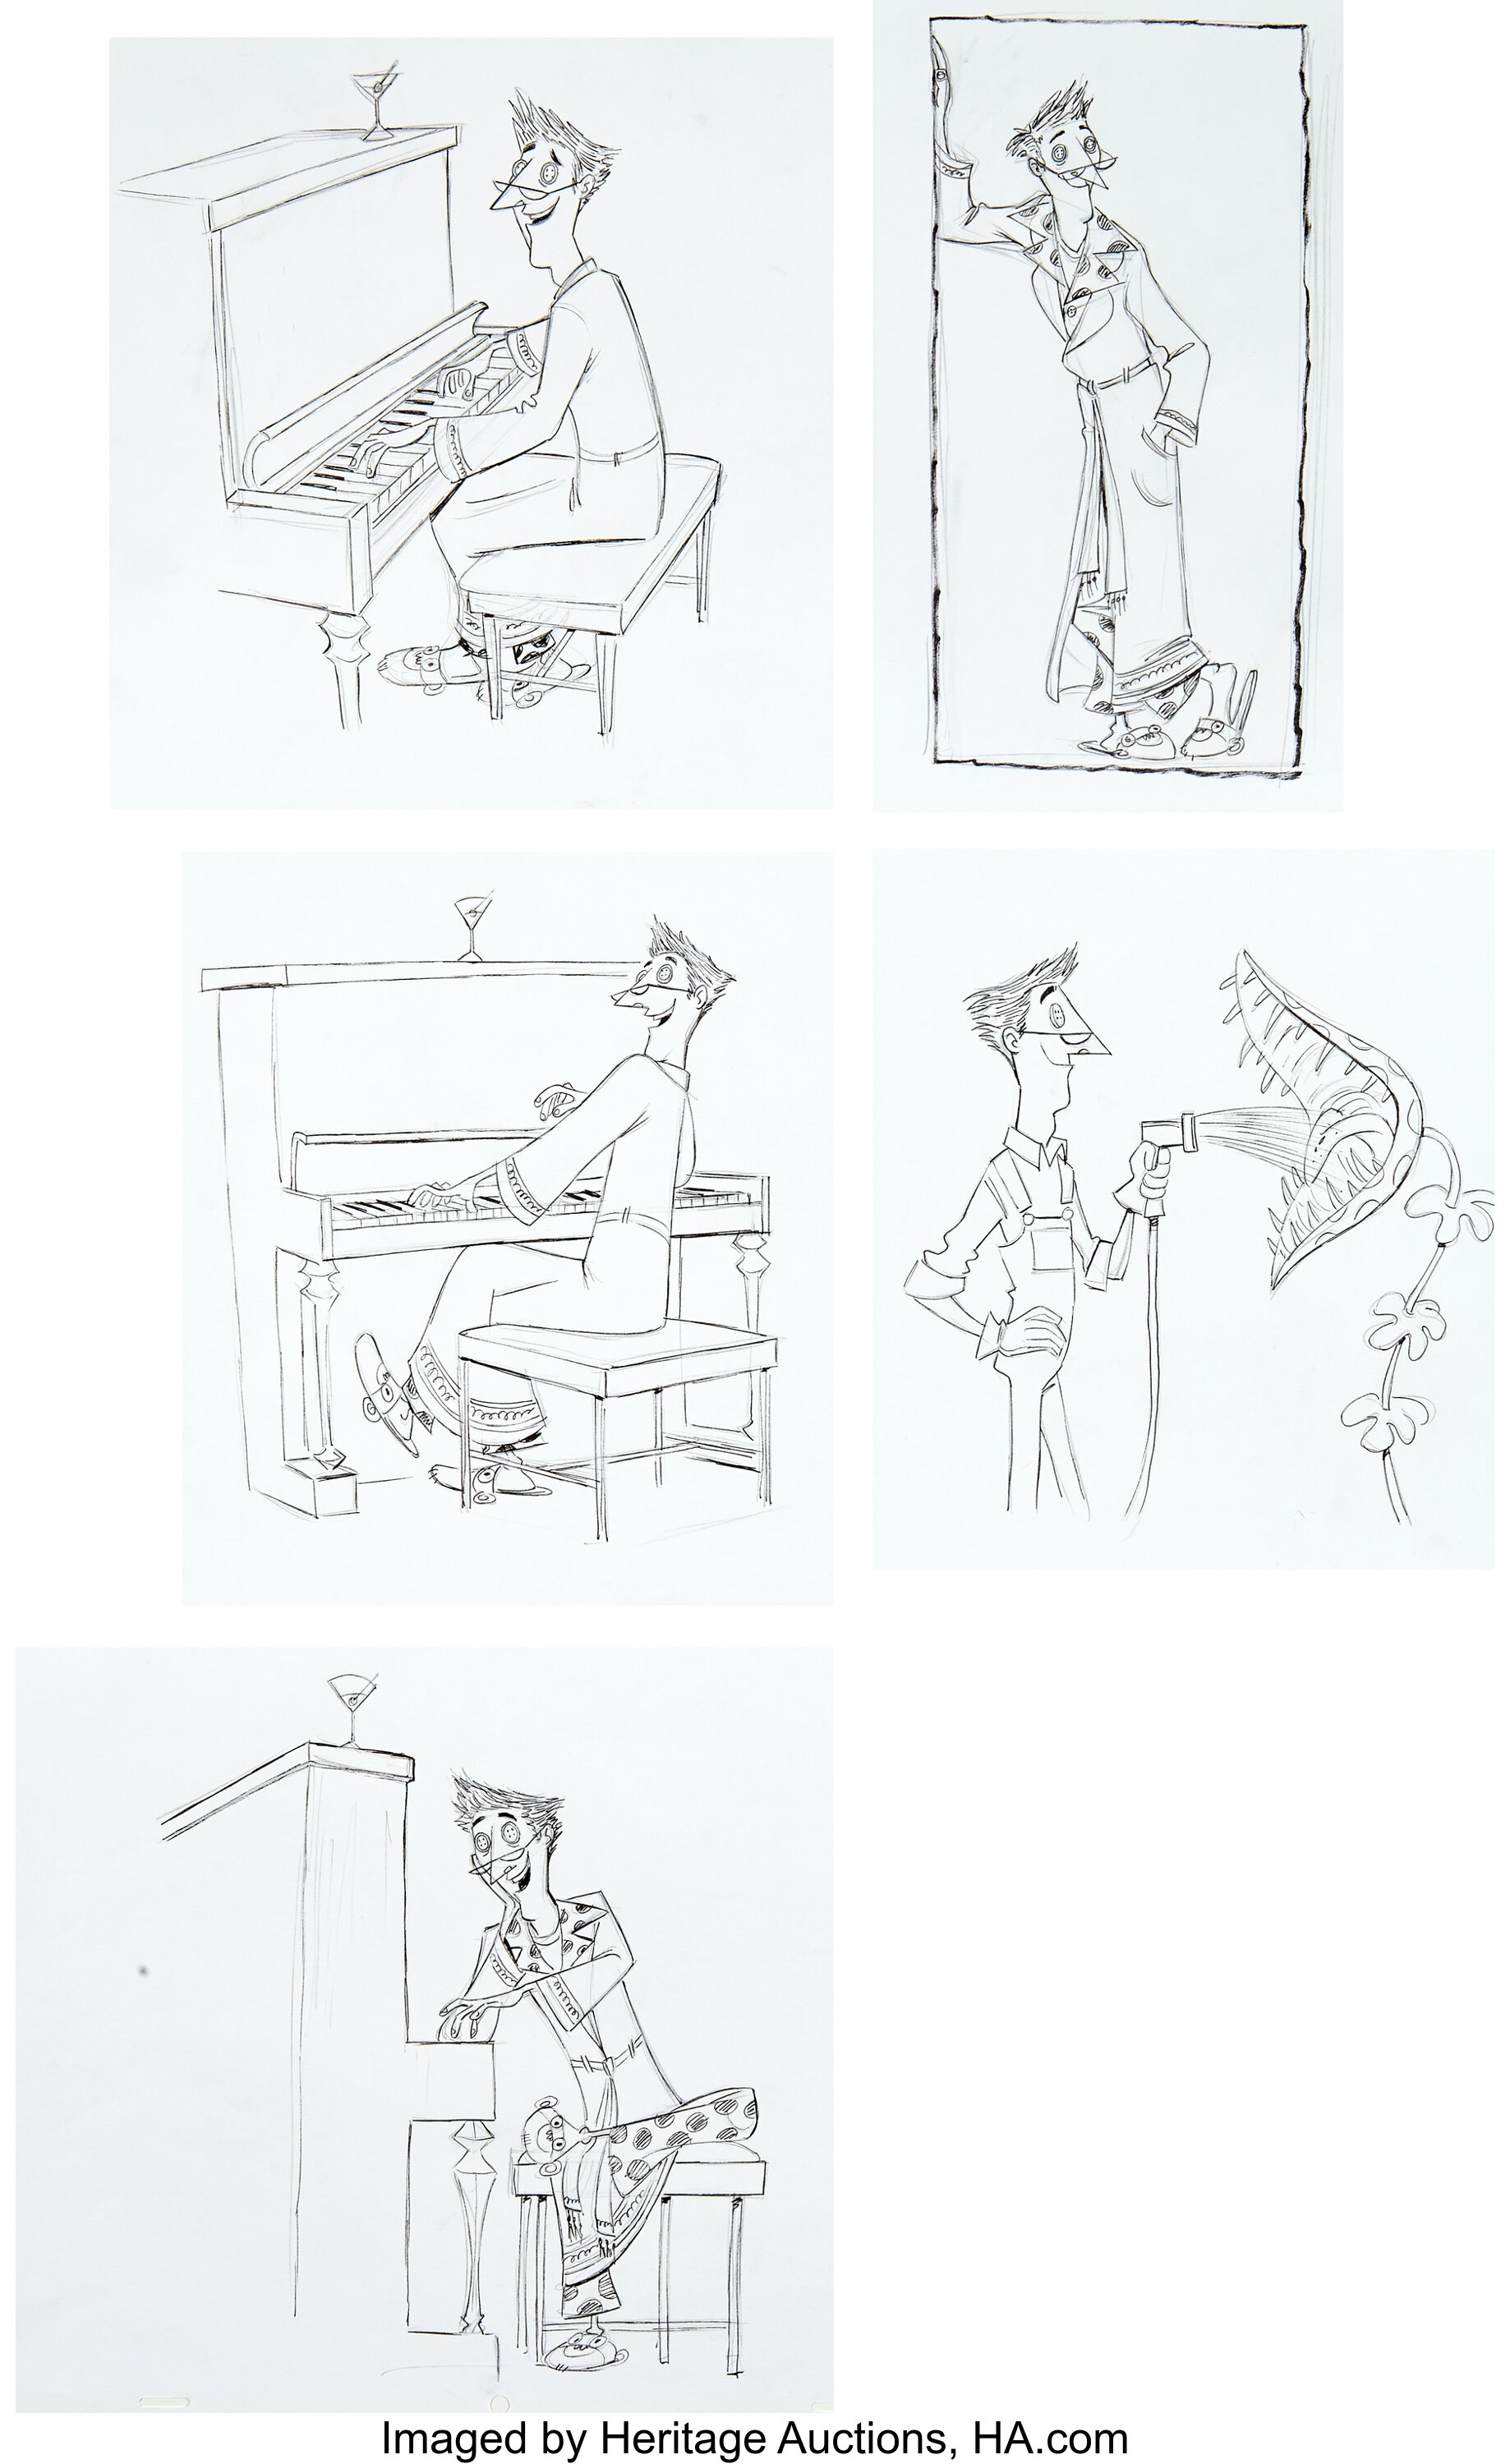 Coraline Coraline S Other Father Character Design Original Artwork Lot 94049 Heritage Auctions